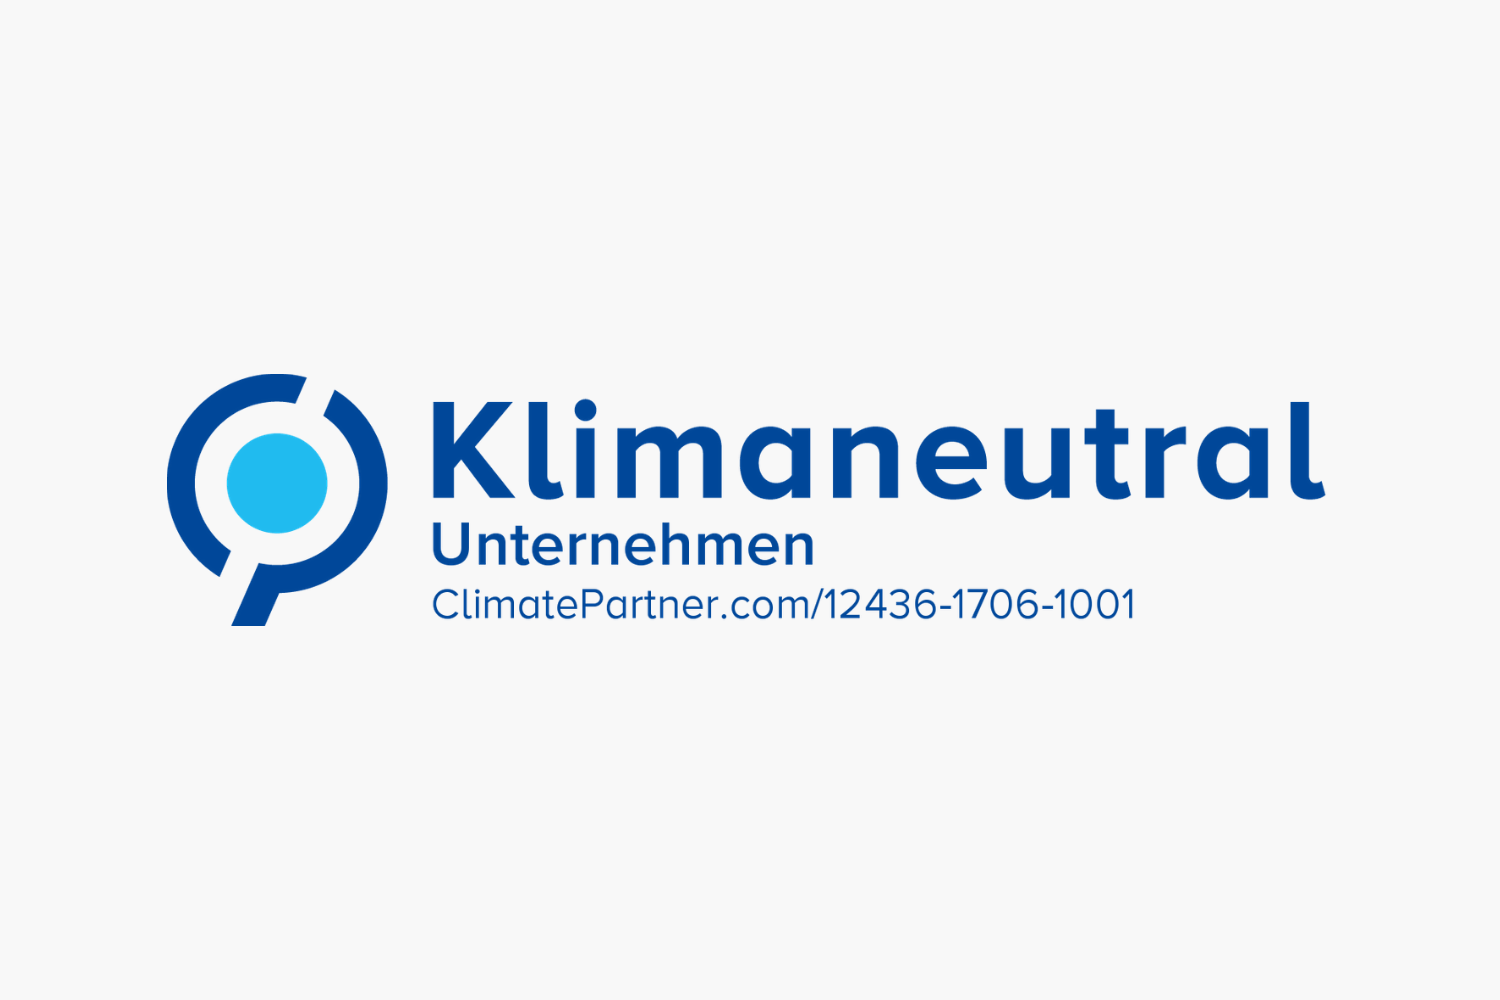 CO2 Neutral Advertising Agency -